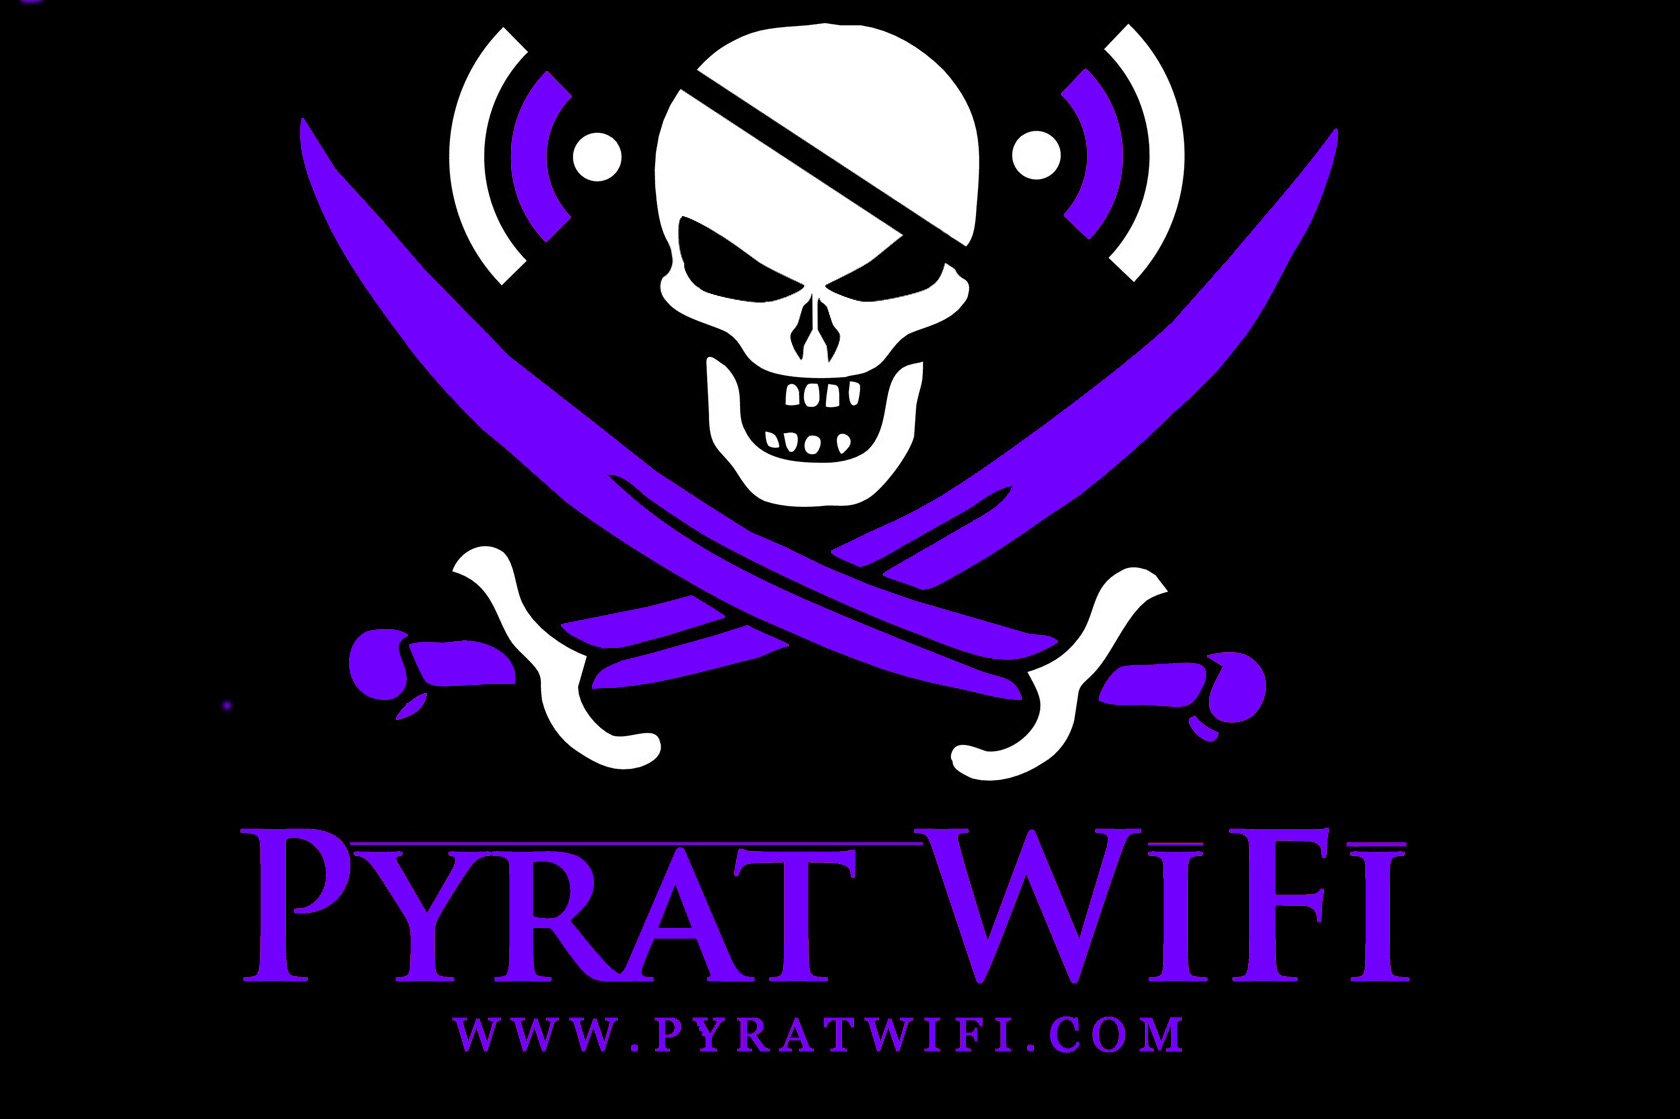 Welcome to Pyrat Wifi LLC